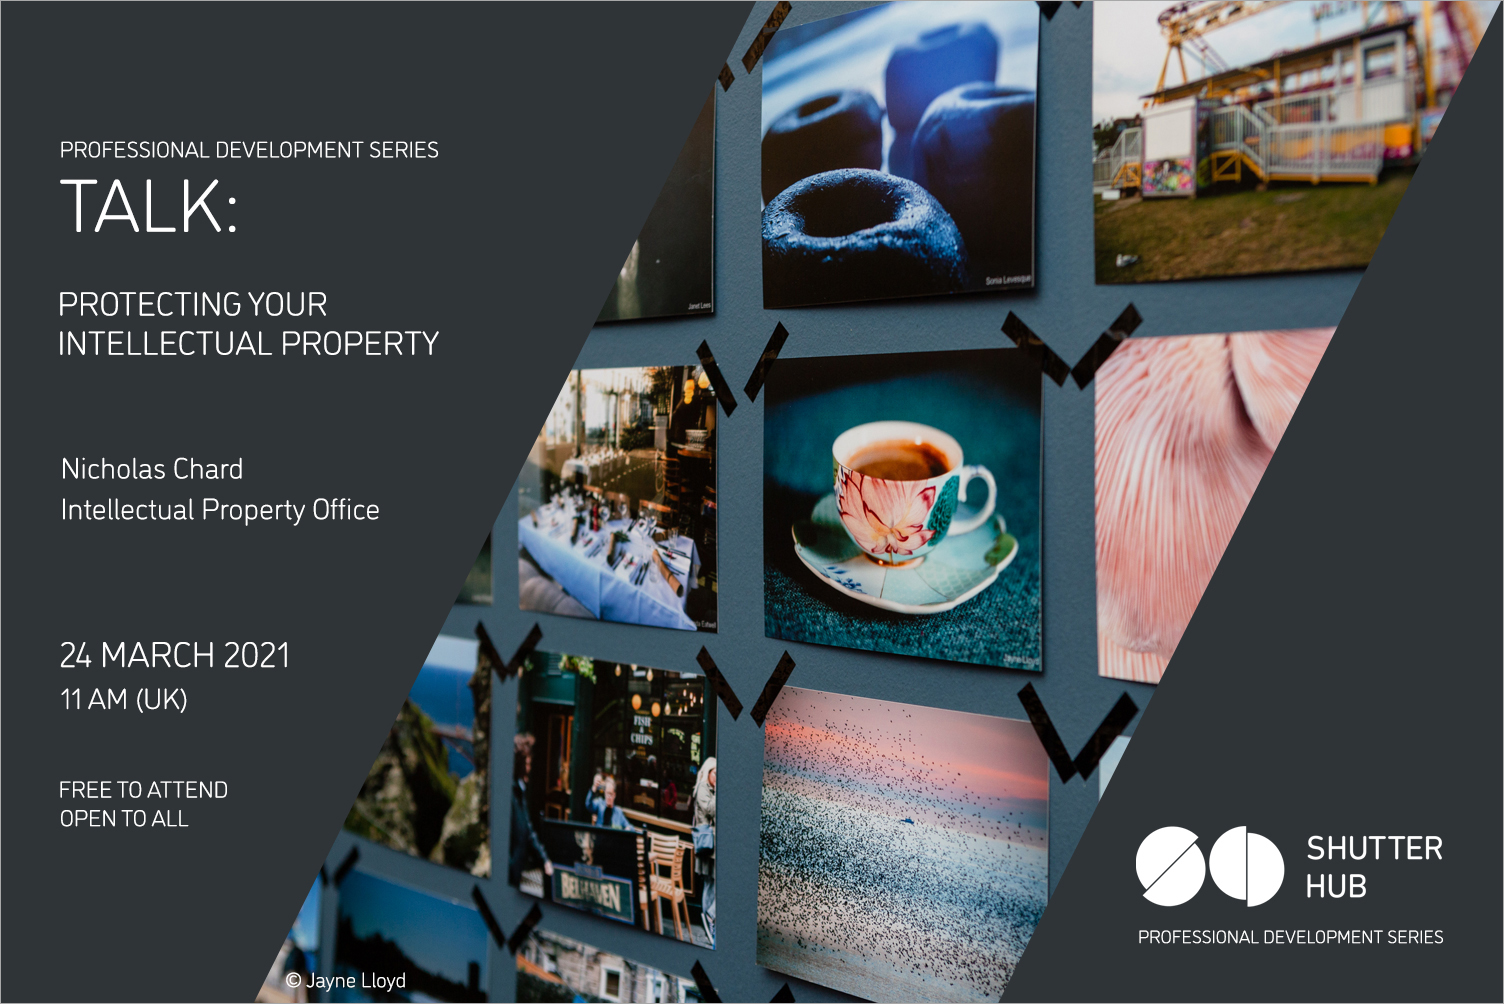 Graphic with an image of photographs displayed on a blue wall, between two grey panels with text reading: 'Professional Development Series, TALK: PROTECTING YOUR INTELLECTUAL PROPERTY, Nicholas Chard, Intellectual Property Office, 24 march 2021, 11am (UK), Free to attend, open to all', and to the right 'Shutter Hub Professional Development Series'